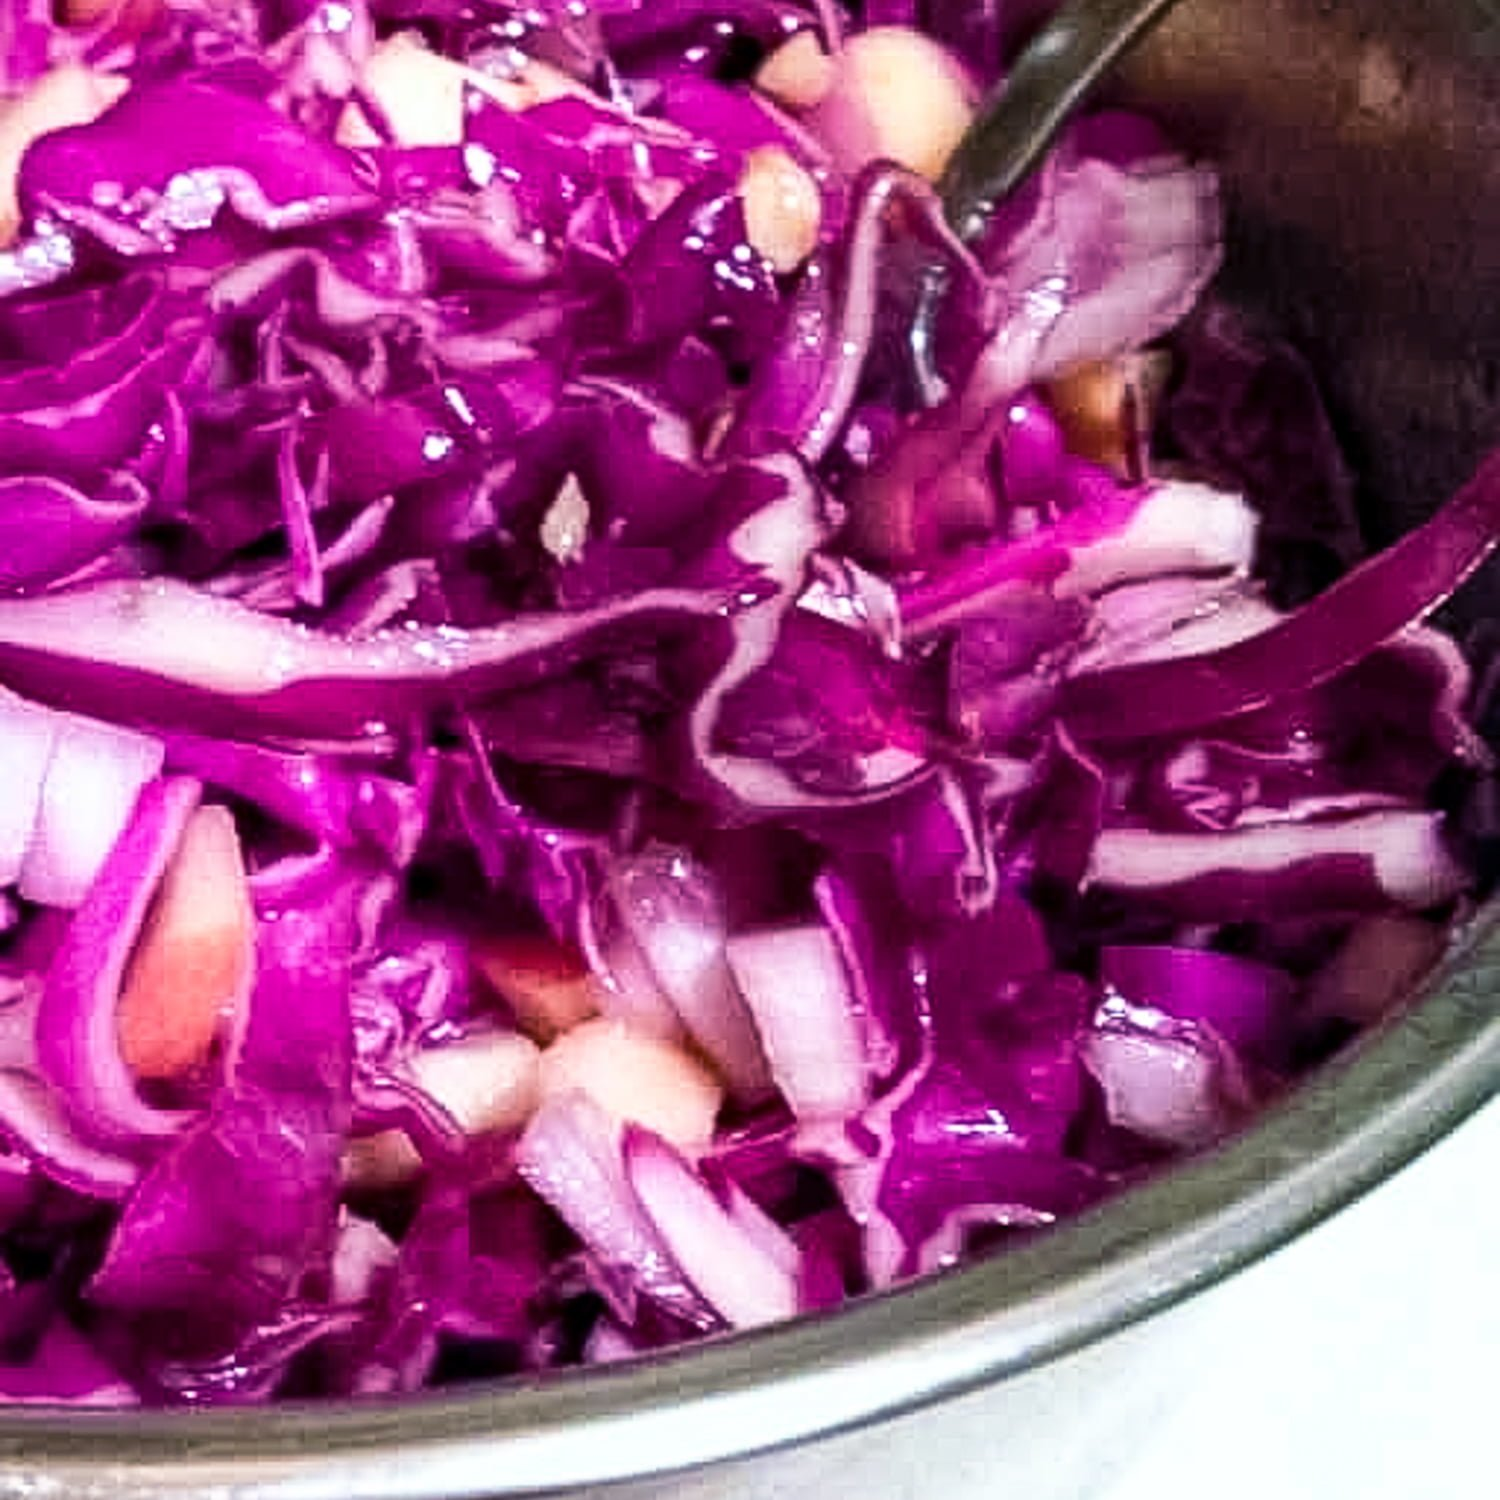 This Apple Walnuts And Raisins Red Cabbage Salad is an awesome winter salad. The crunchy texture of cabbage, apples and walnuts makes this salad a delicious option for dinner.